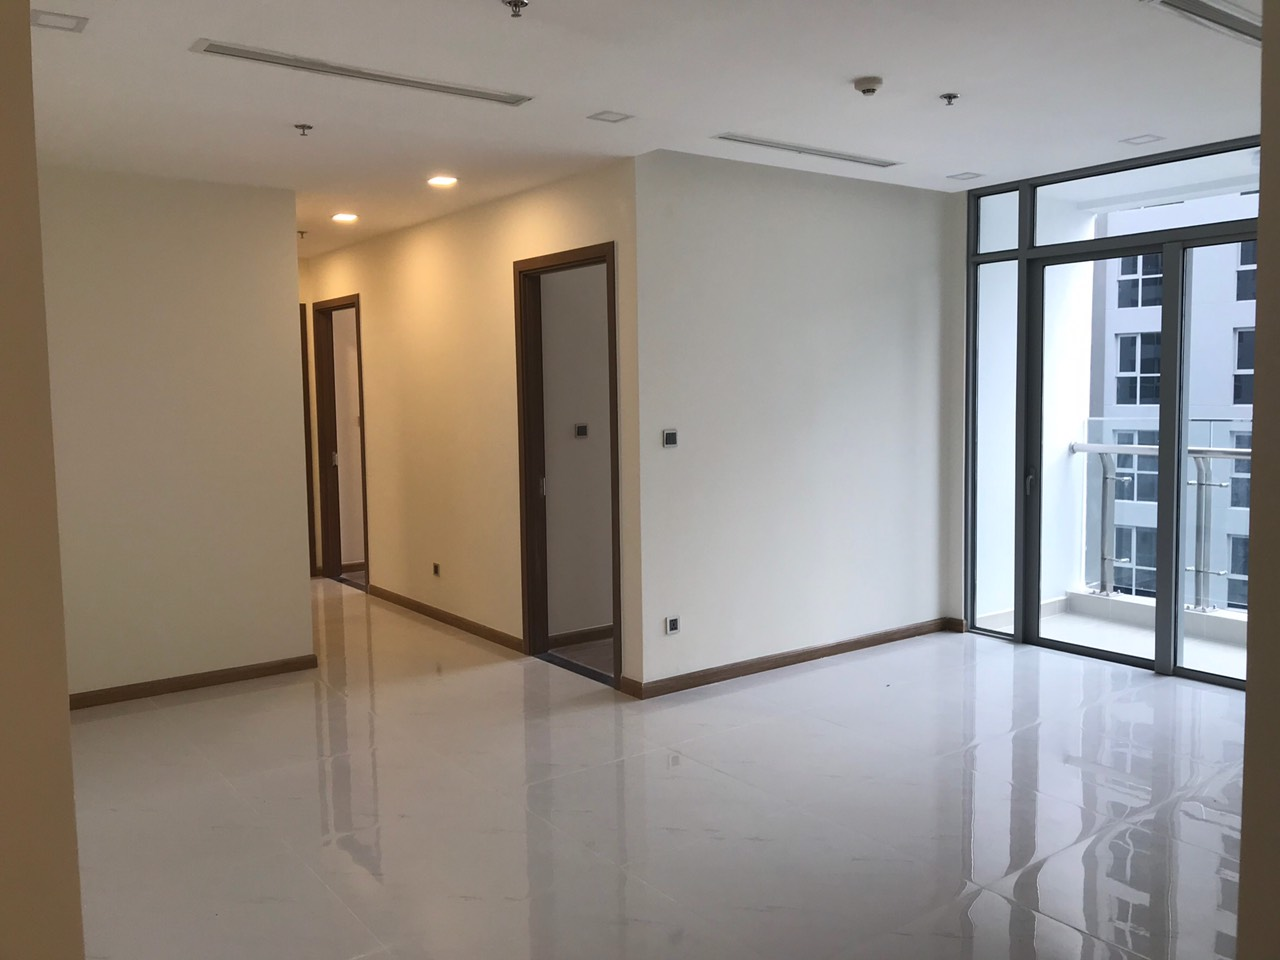 vinhomes central park apartment for rent in binh thanh district hcmc BT105P3673 (1)